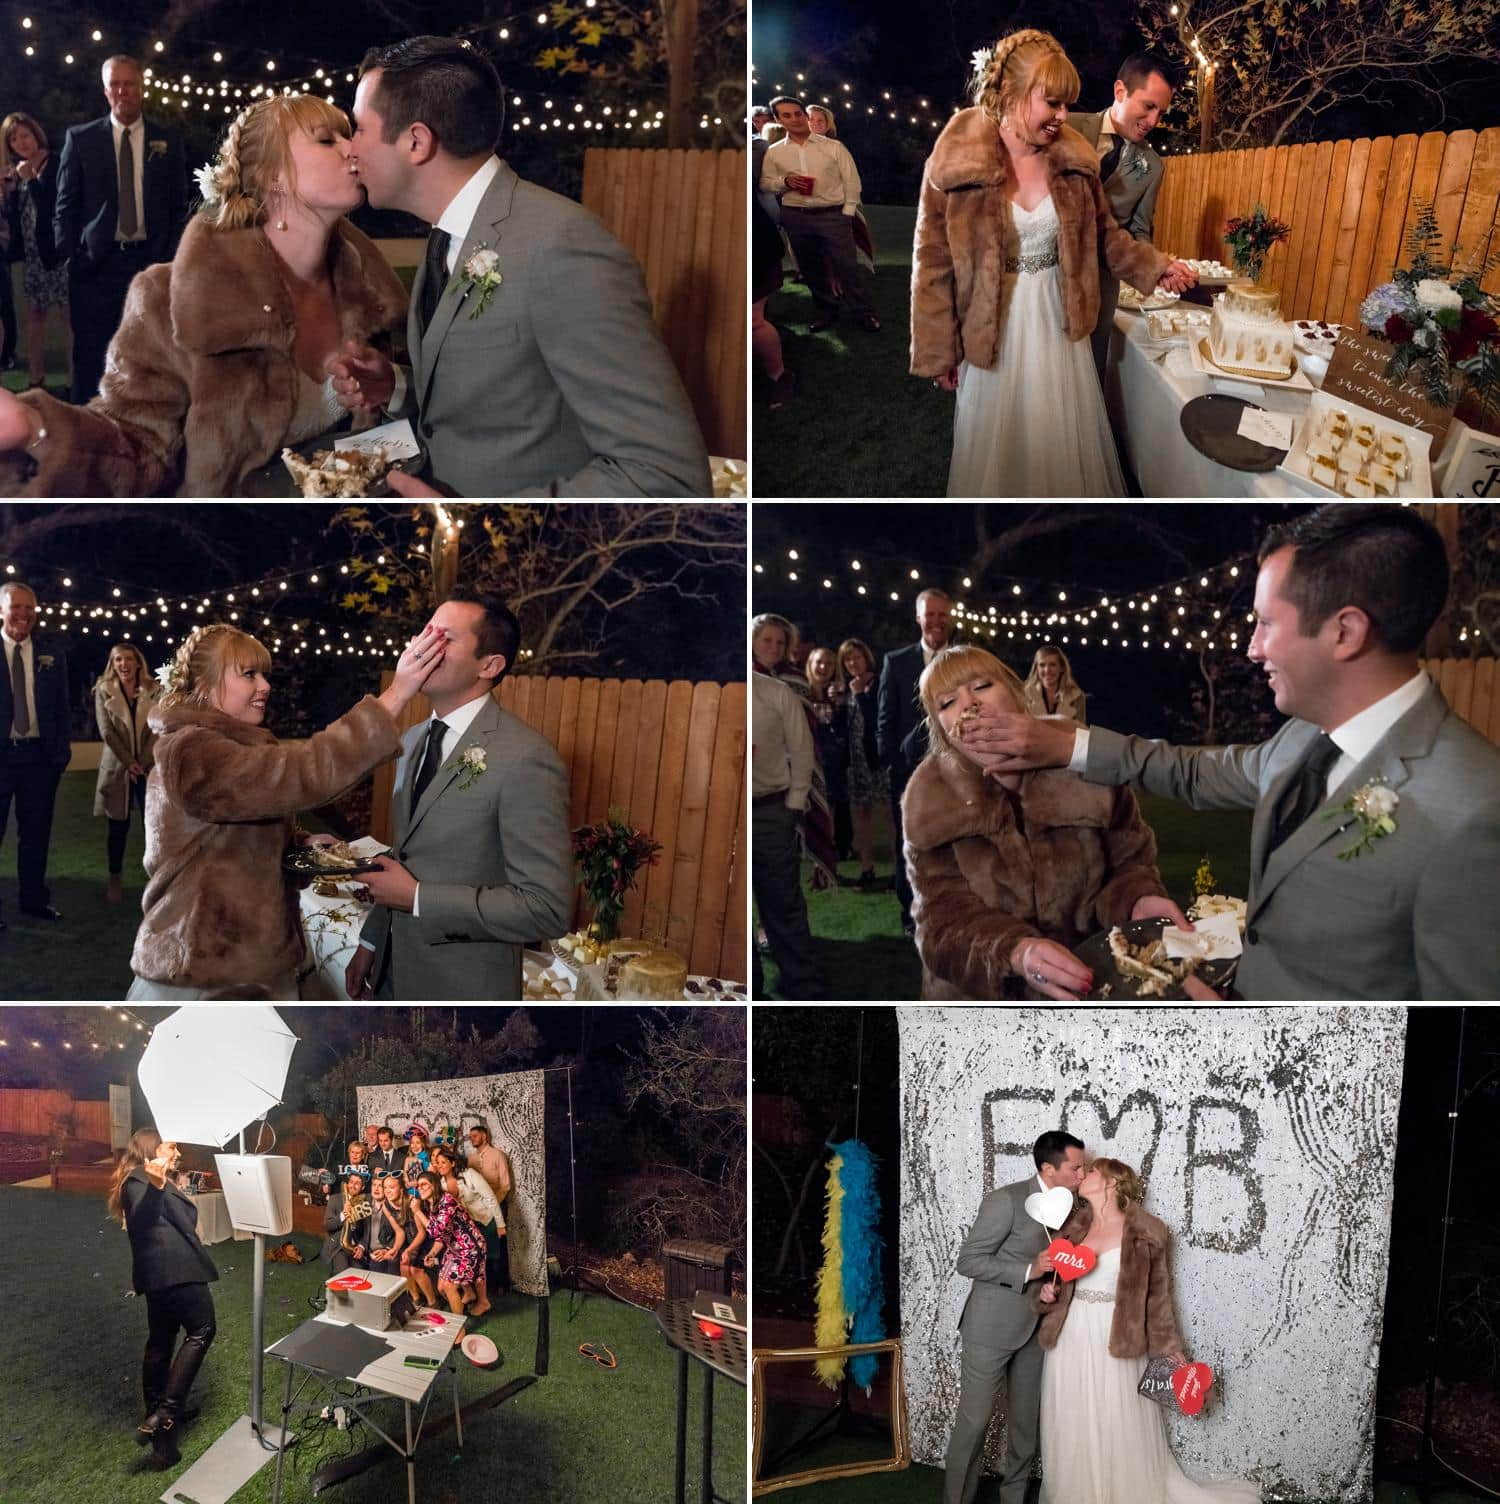 Bride in fur jacket cutting wedding cake and pictures at wedding photo booth.